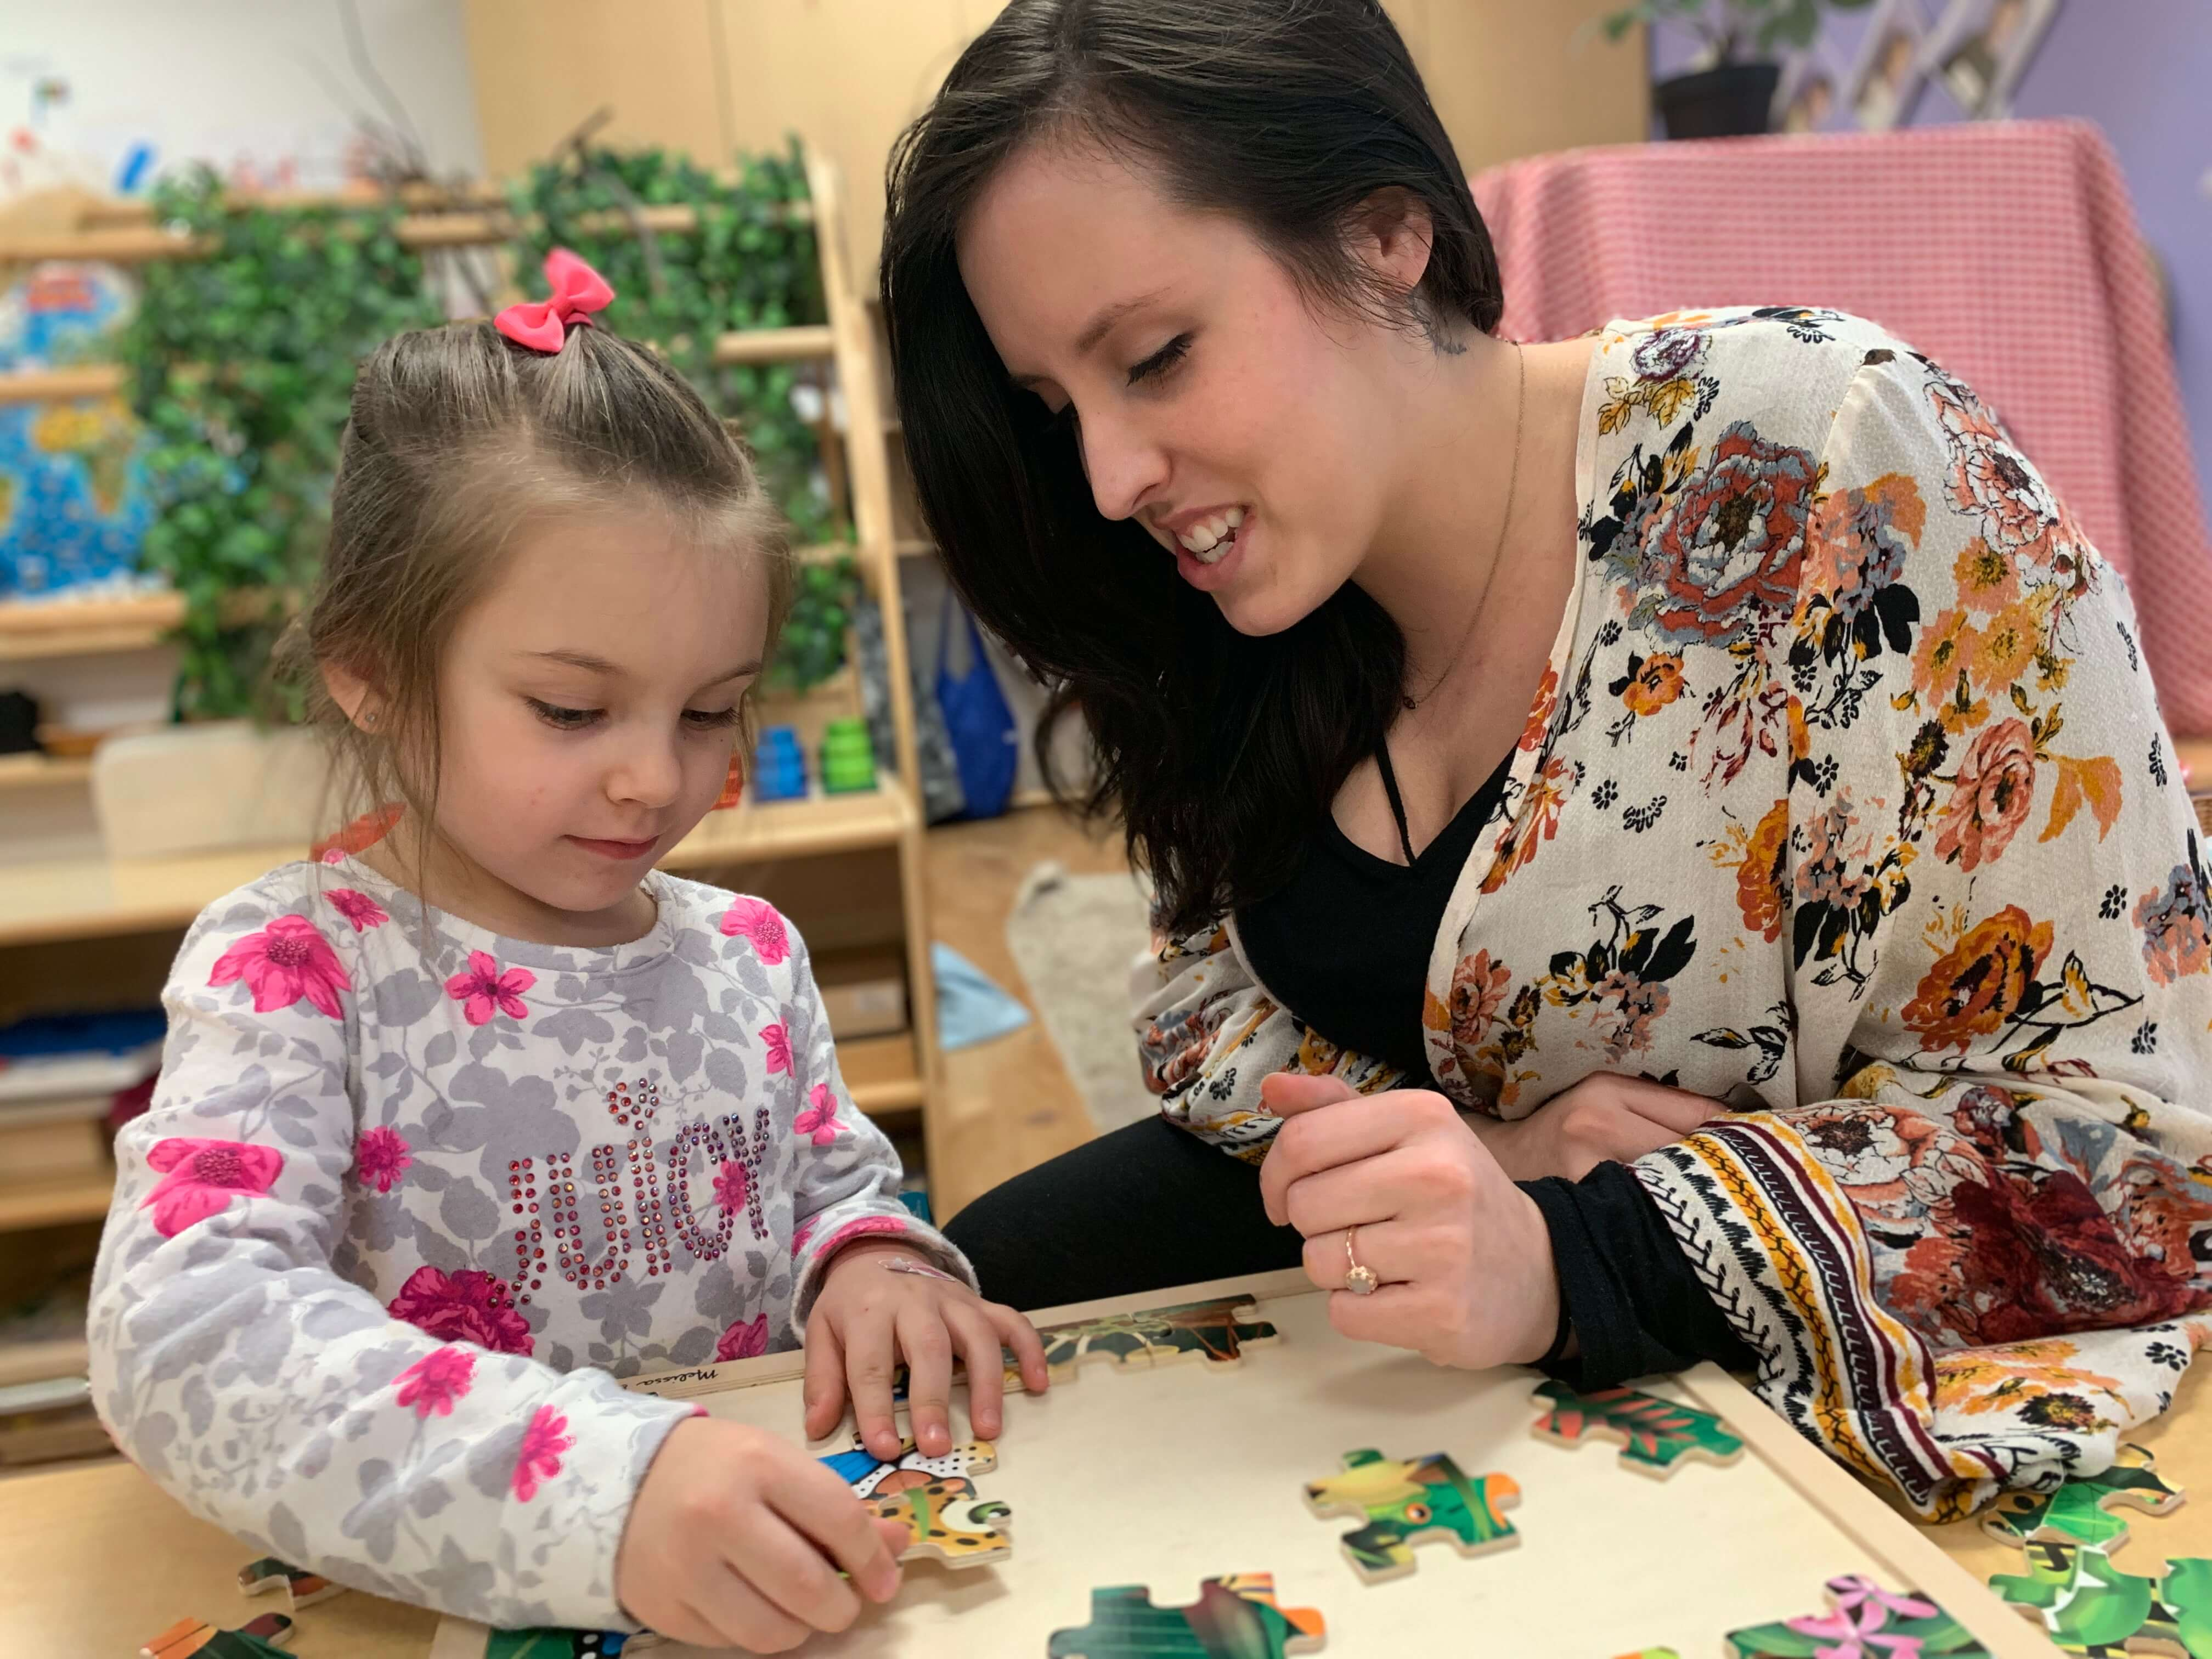 Looking for childcare and preschool jobs in Naperville?